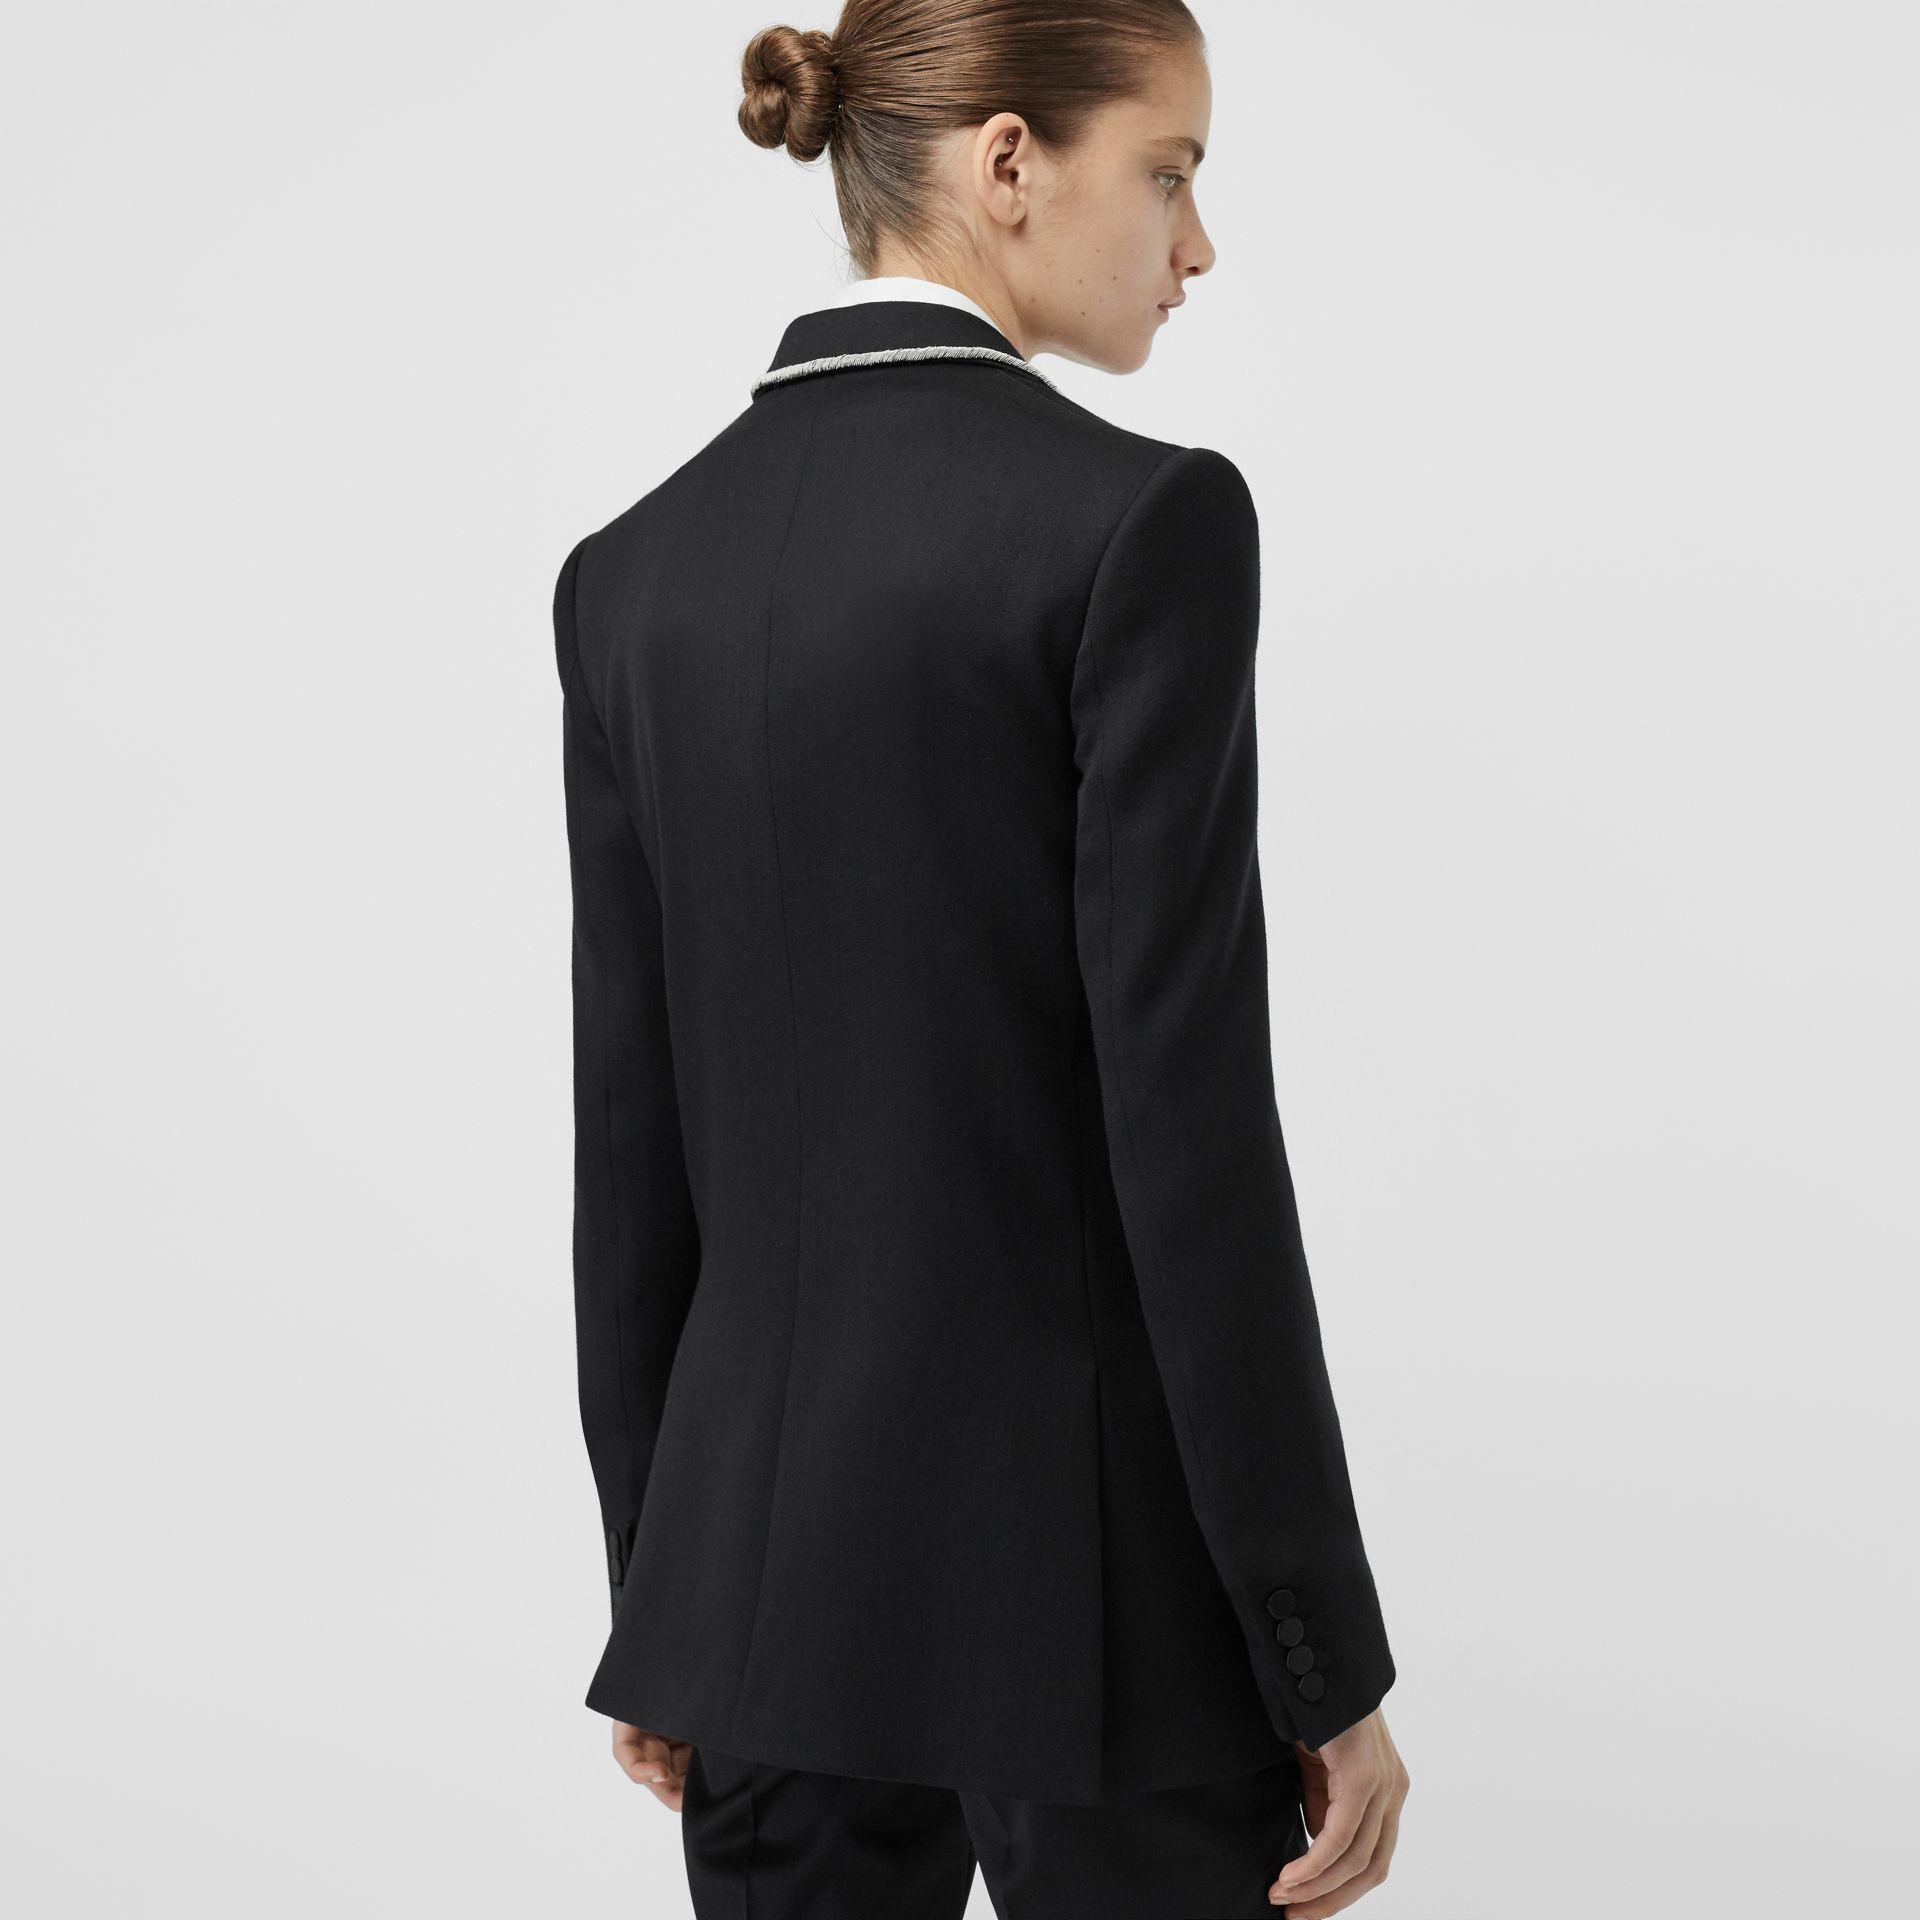 Bullion Stretch Wool Double-breasted Jacket in Black - Women | Burberry United States - gallery image 2